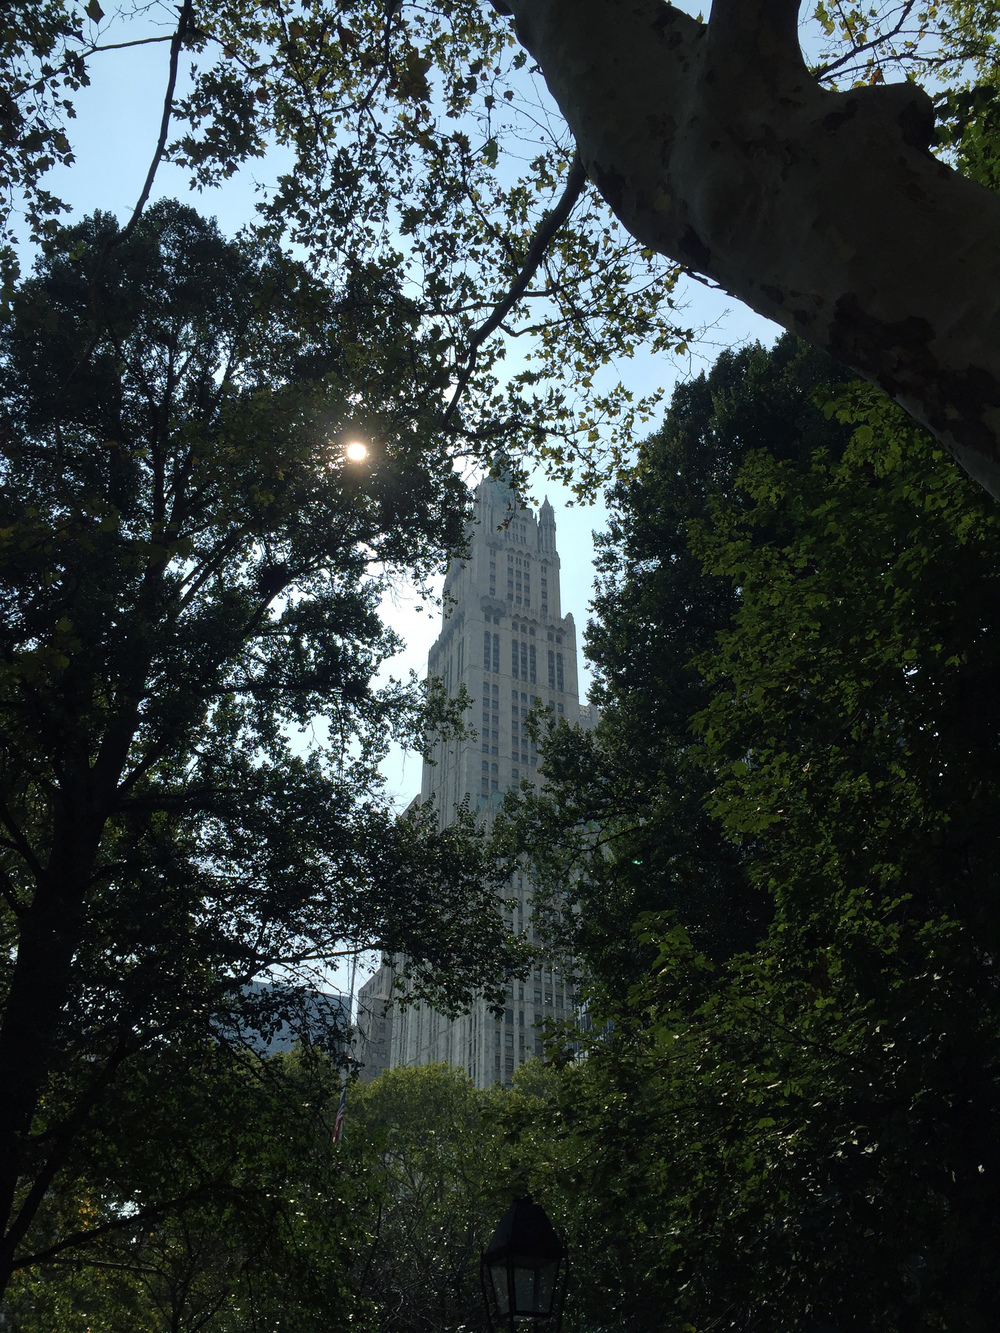 The Manhattan Municipal Building through trees in City Hall Park - September 3, 2015